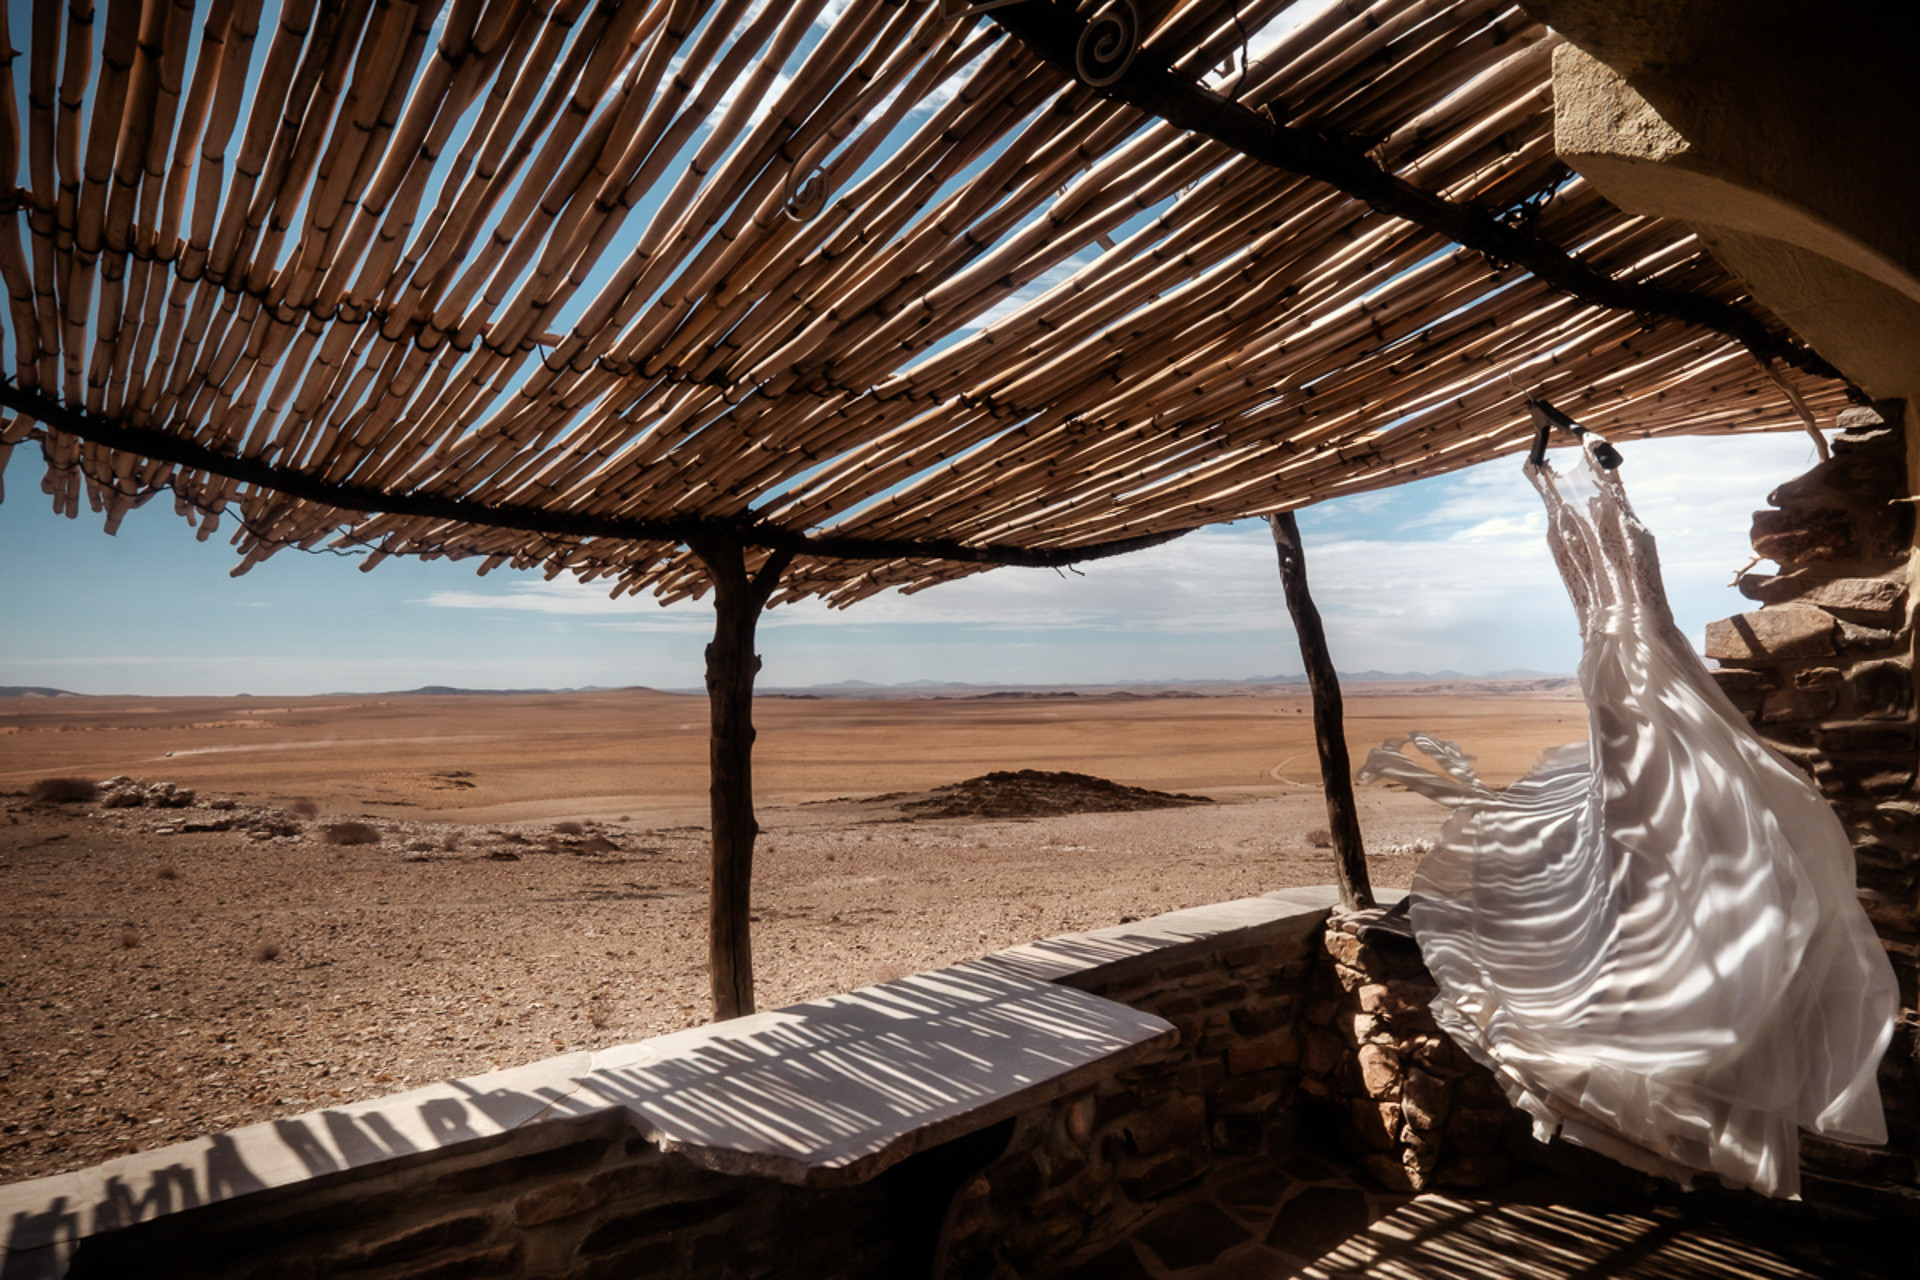 Namibia, Africa Elopement Photos | The majestic desert backdrop